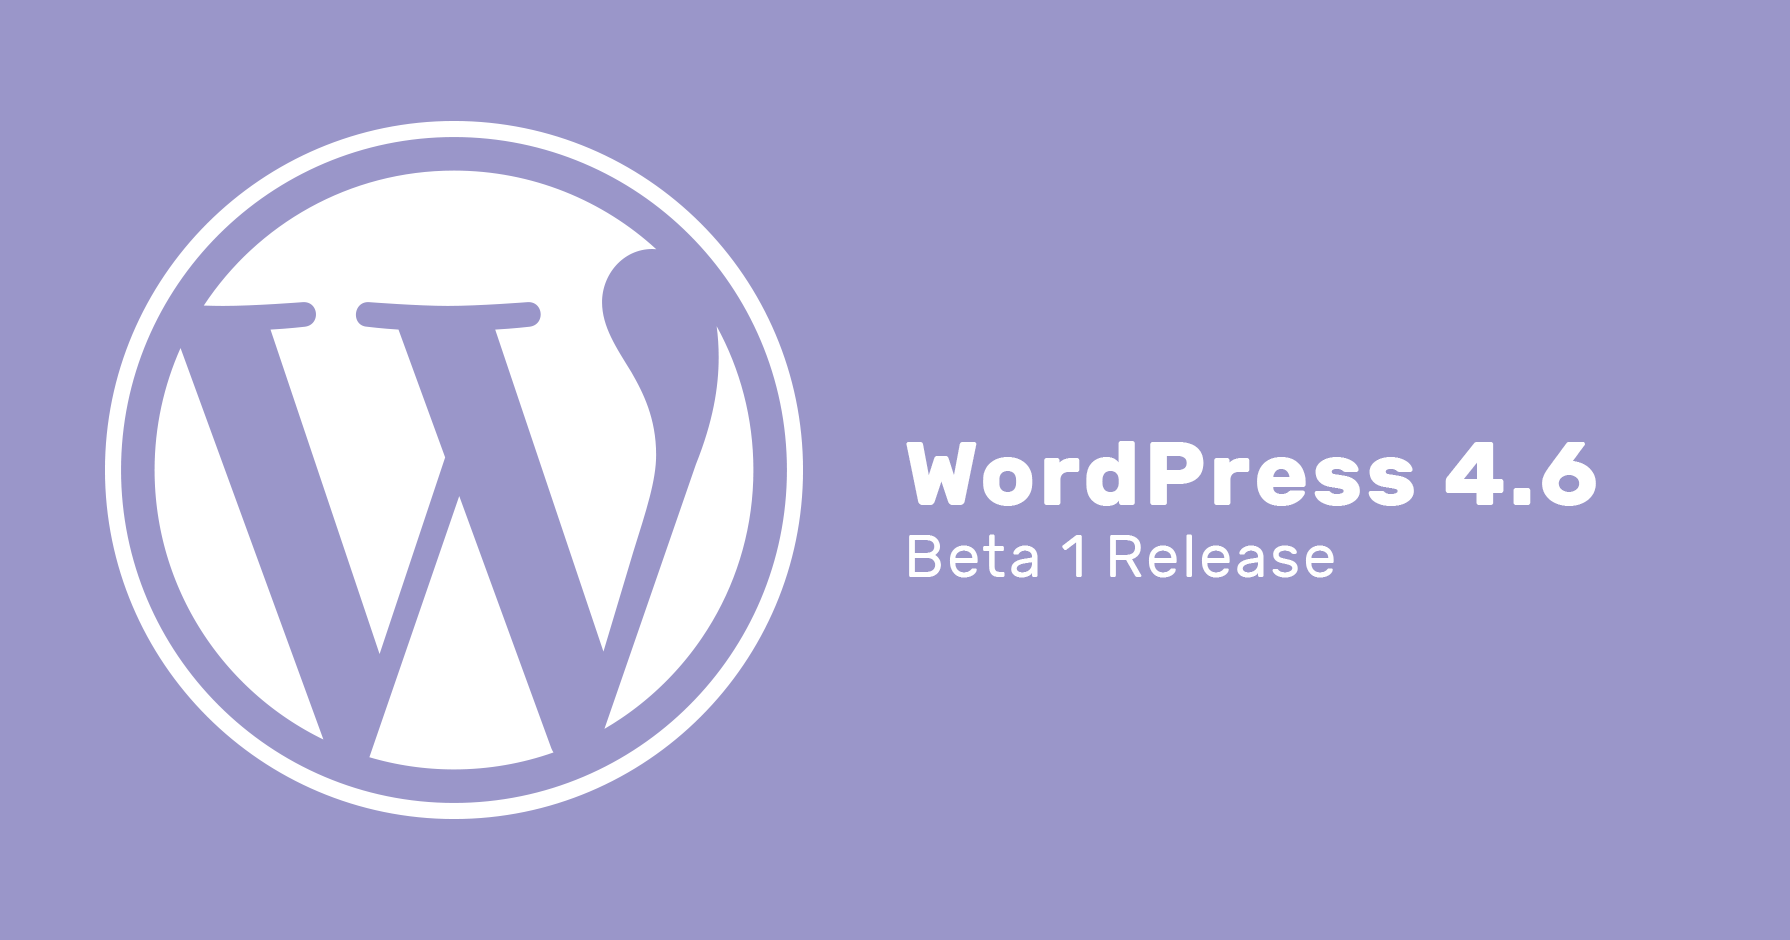 WordPress 4.6 Beta 1 available for testing